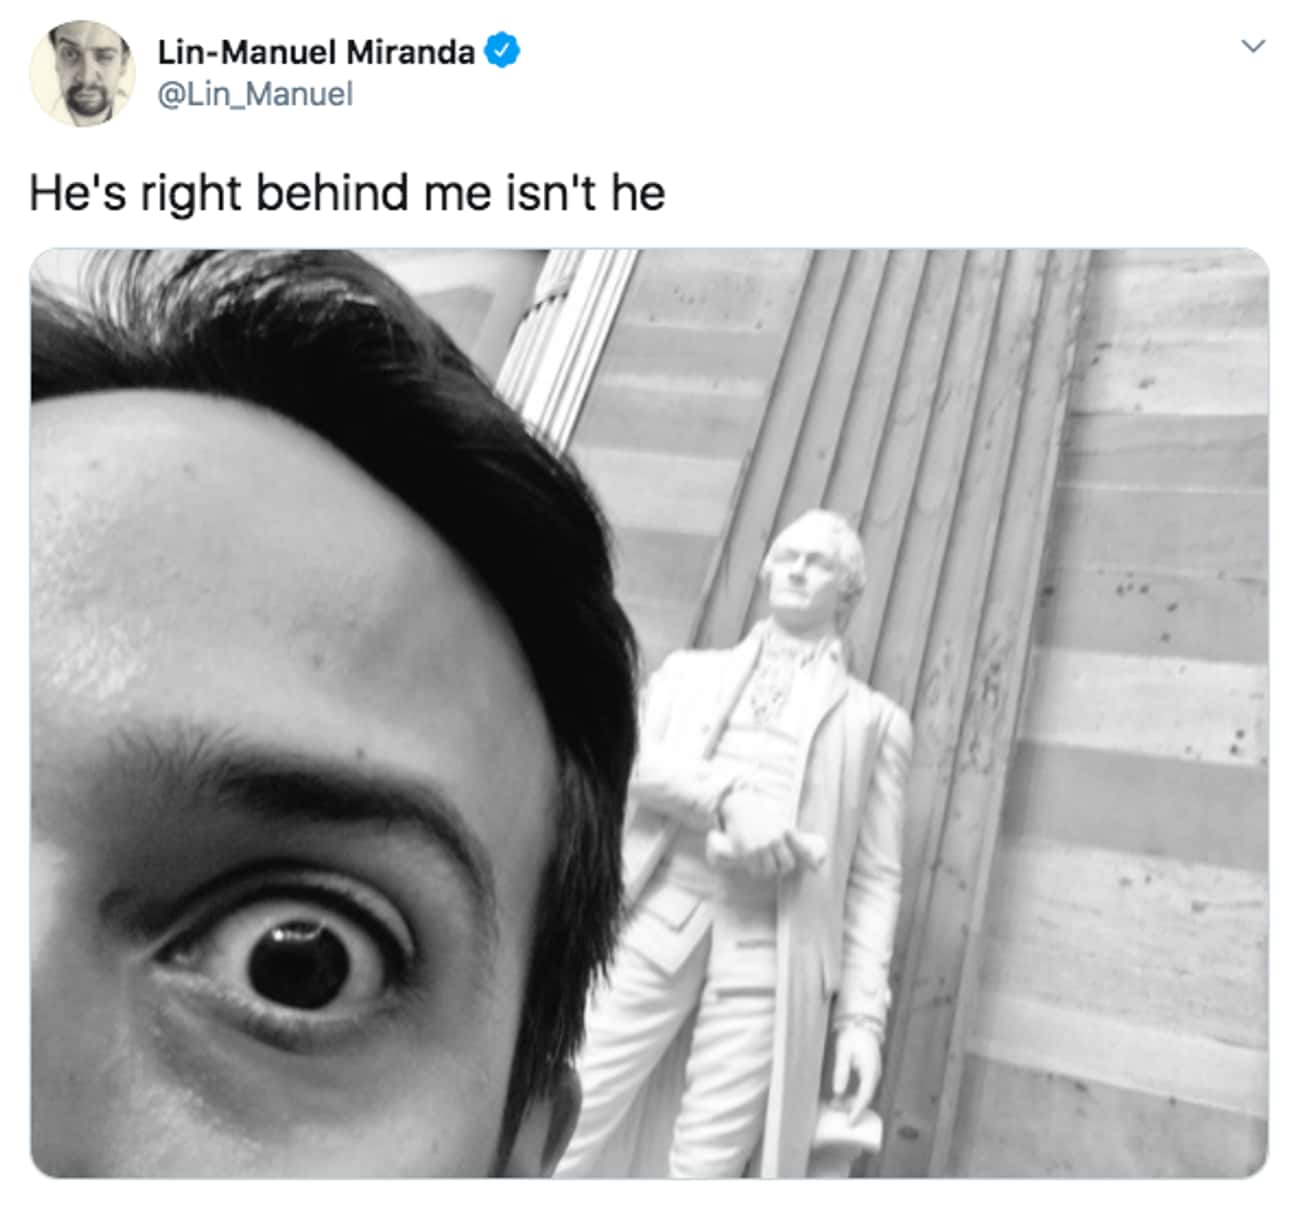 Don't Panic is listed (or ranked) 3 on the list 27 Lin-Manuel Miranda Tweets That Prove He Is Just As Amazing On Twitter As He Is On Stage